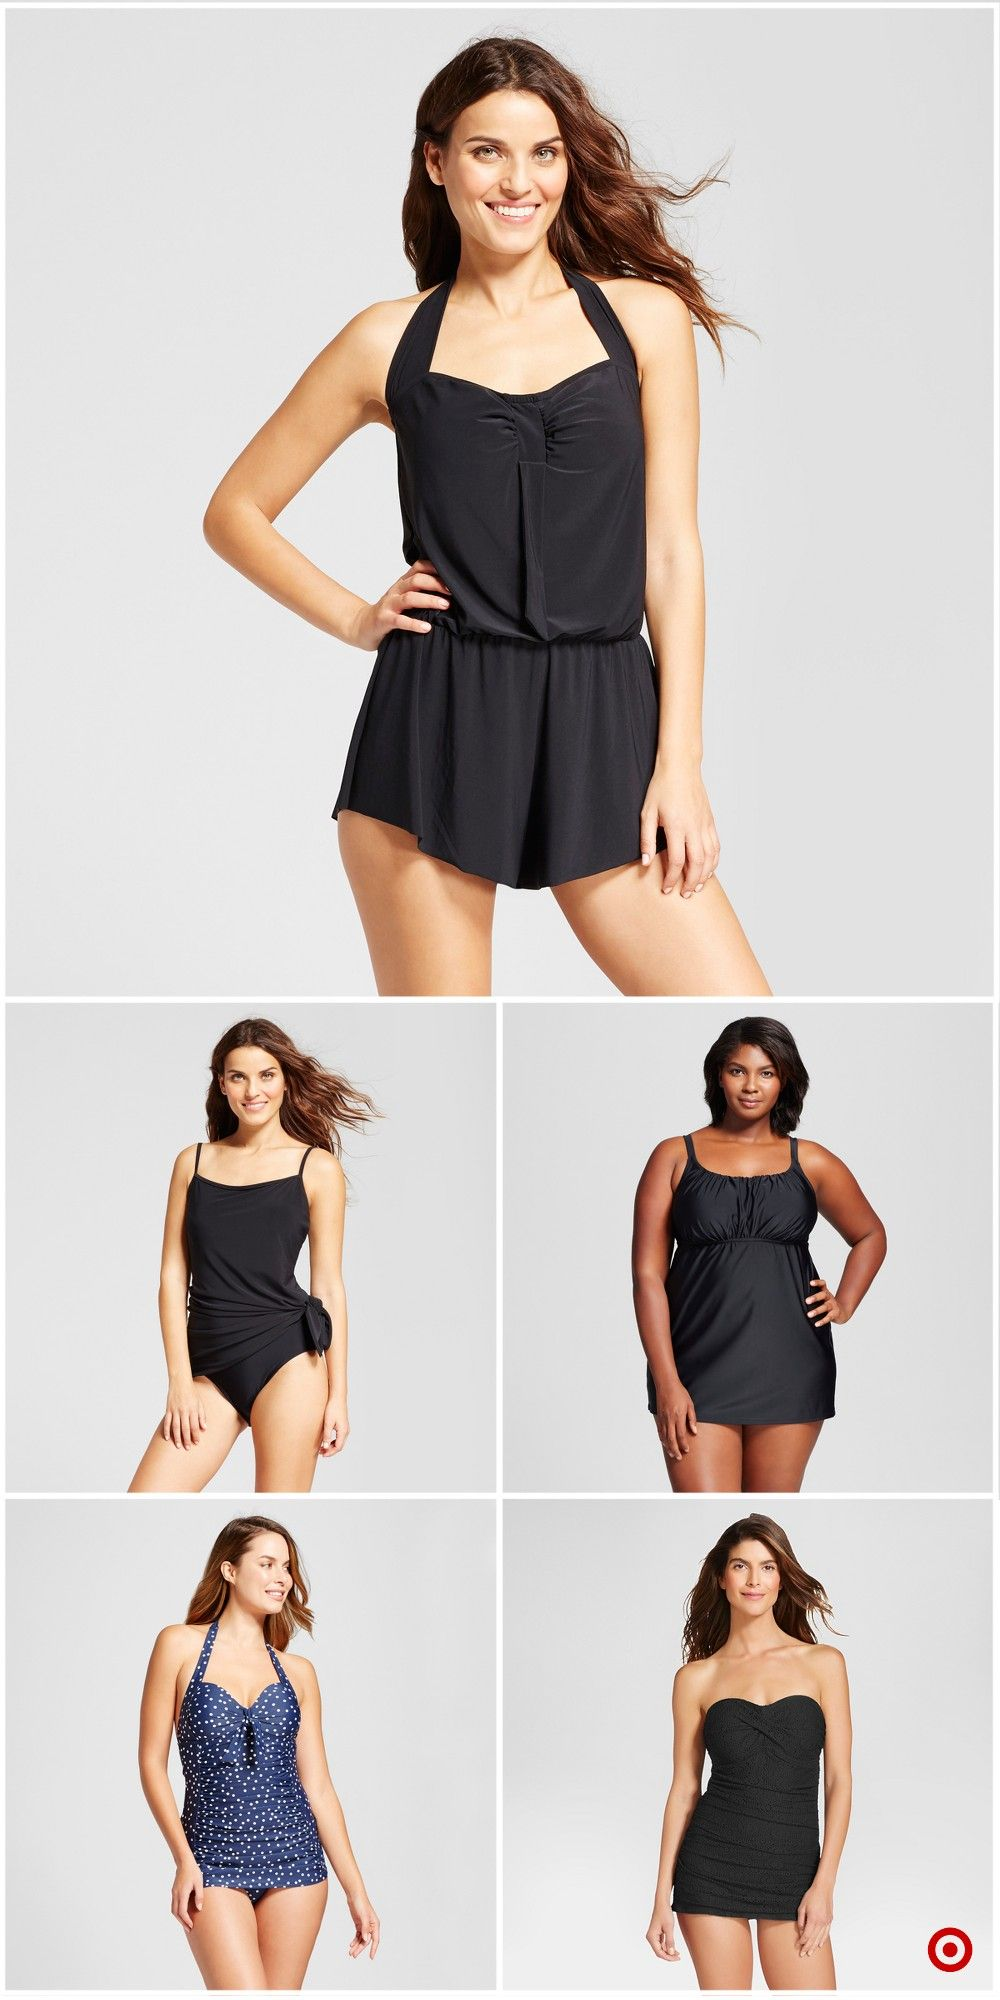 b013918207e4d Shop Target for swim dresses you will love at great low prices. Free  shipping on